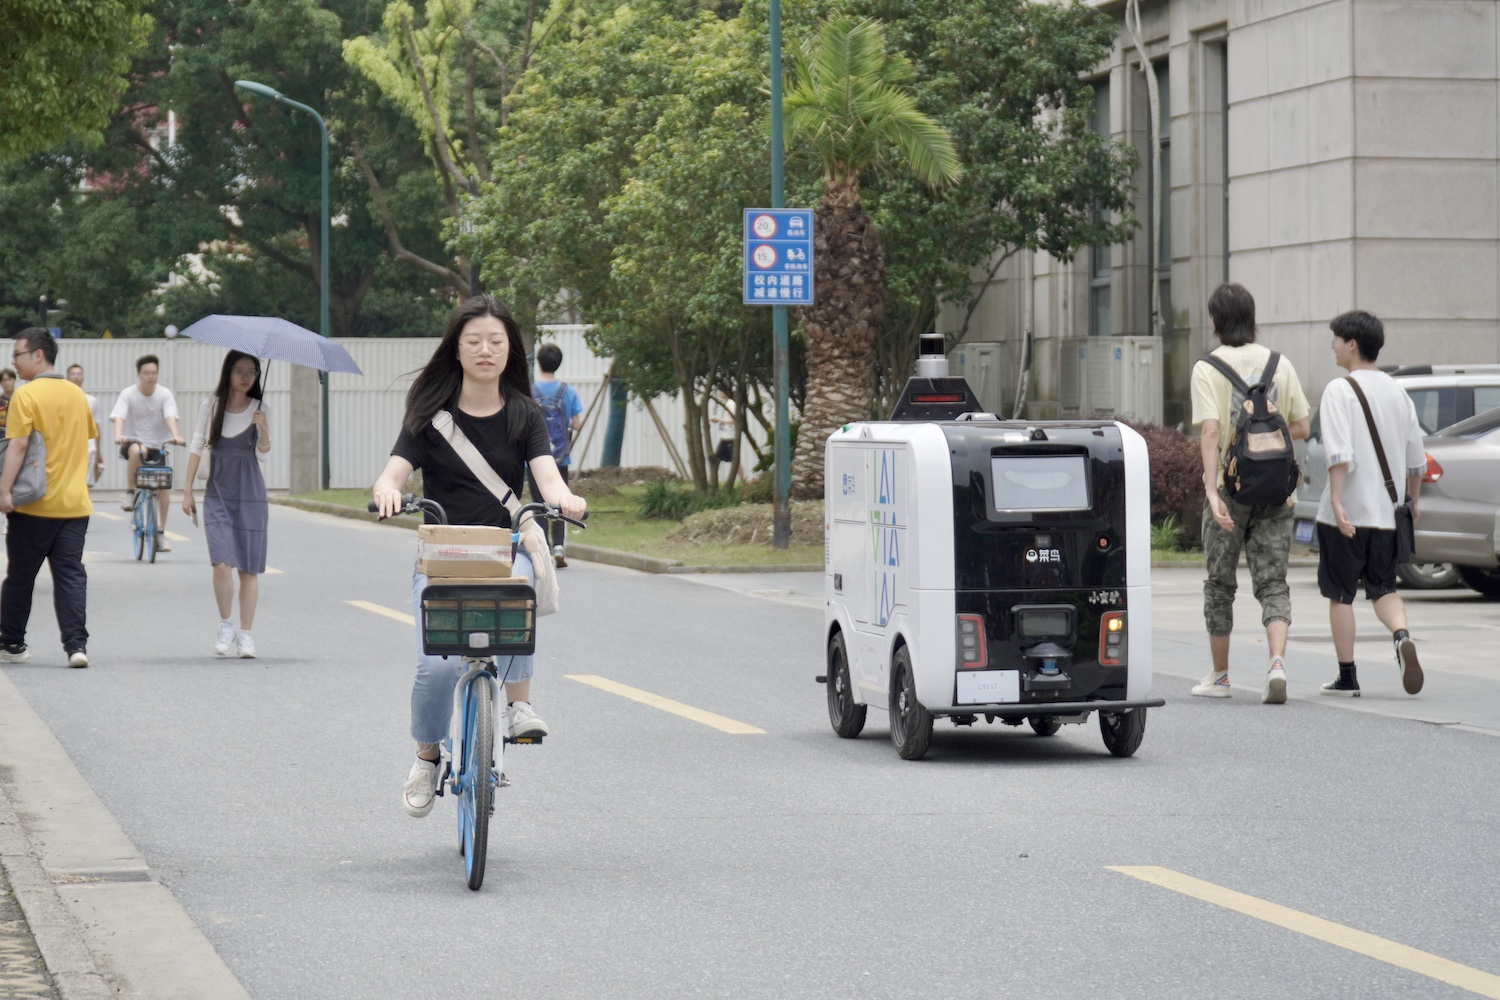 Cainiao Driverless Car Xiaomanlv Makes University Campus Deliveries During 618 1